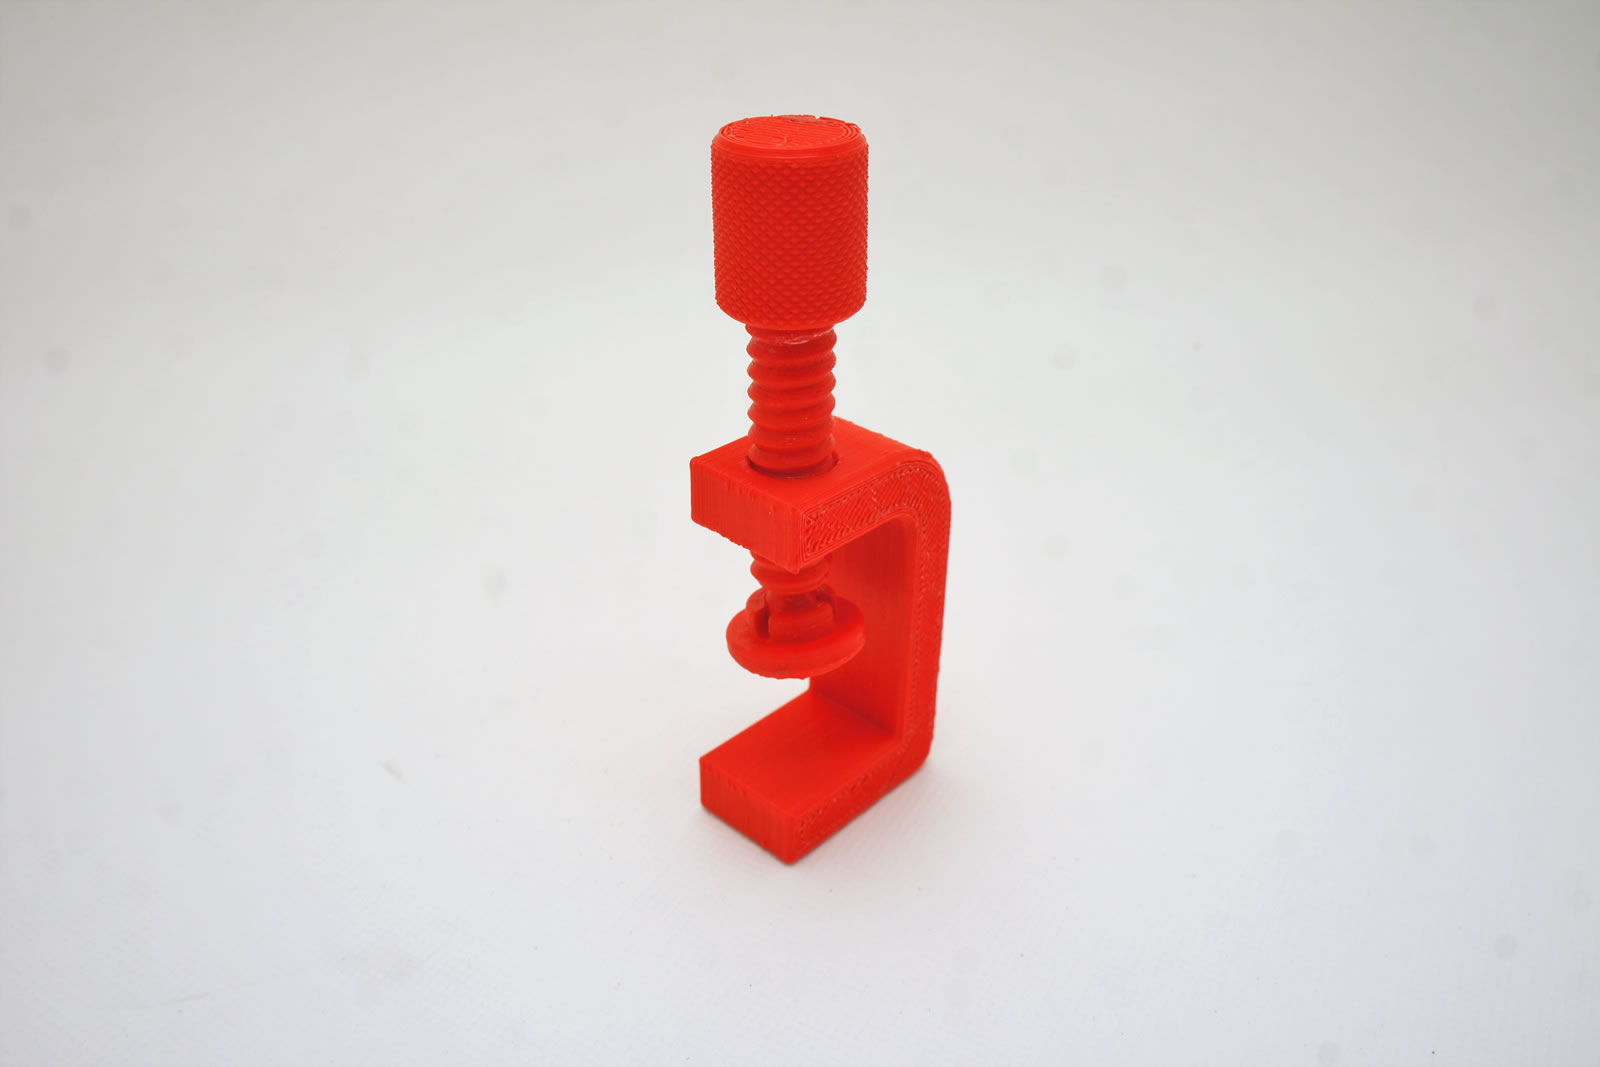 FDM 3d printed part